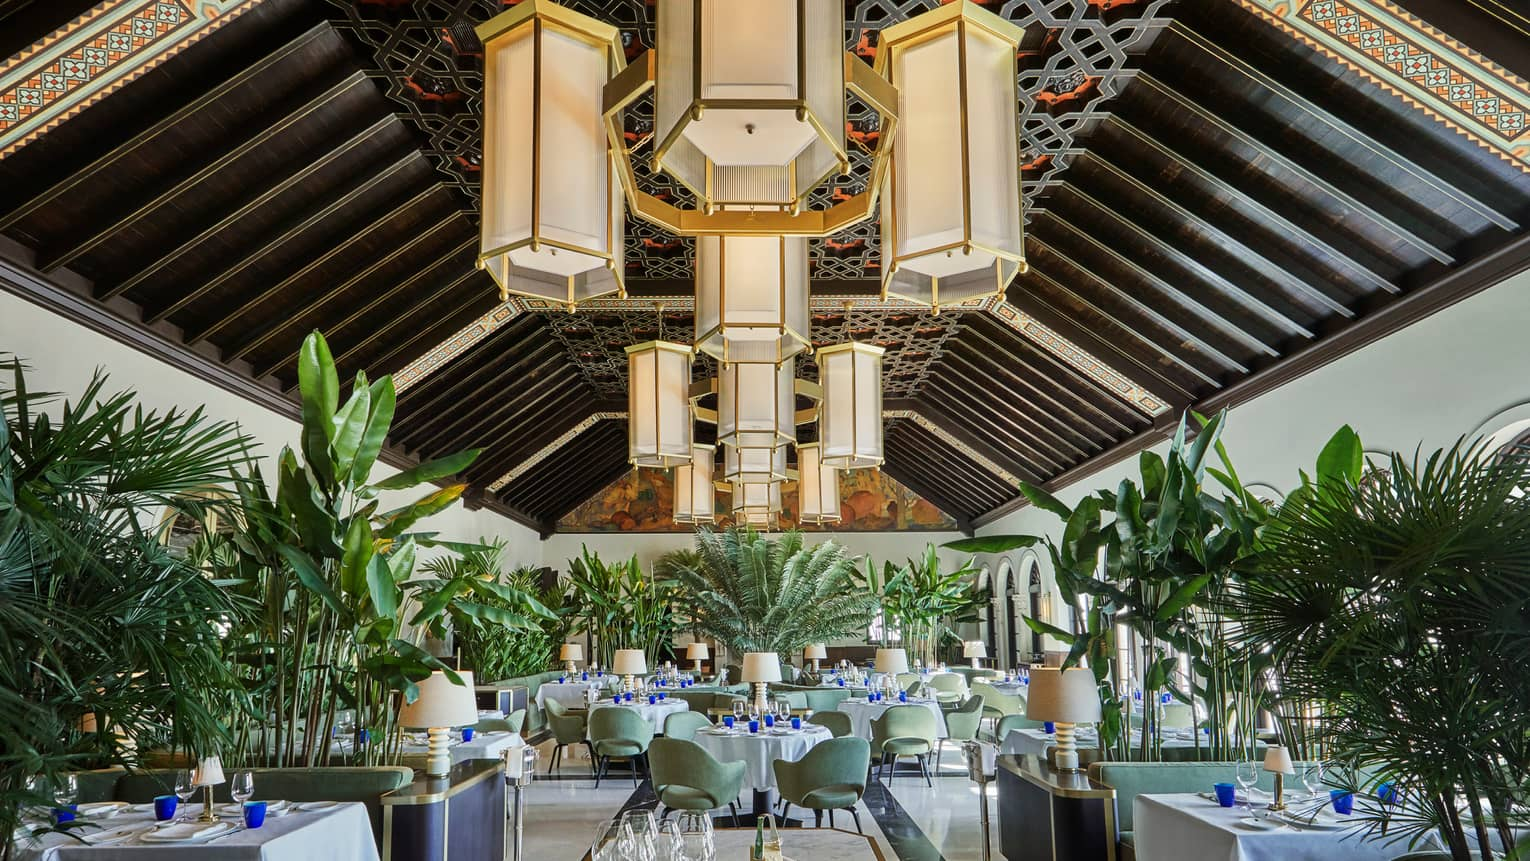 Historic Peacock Alley restored dining room with high ceilings, art deco-style chandeliers and tropical plants